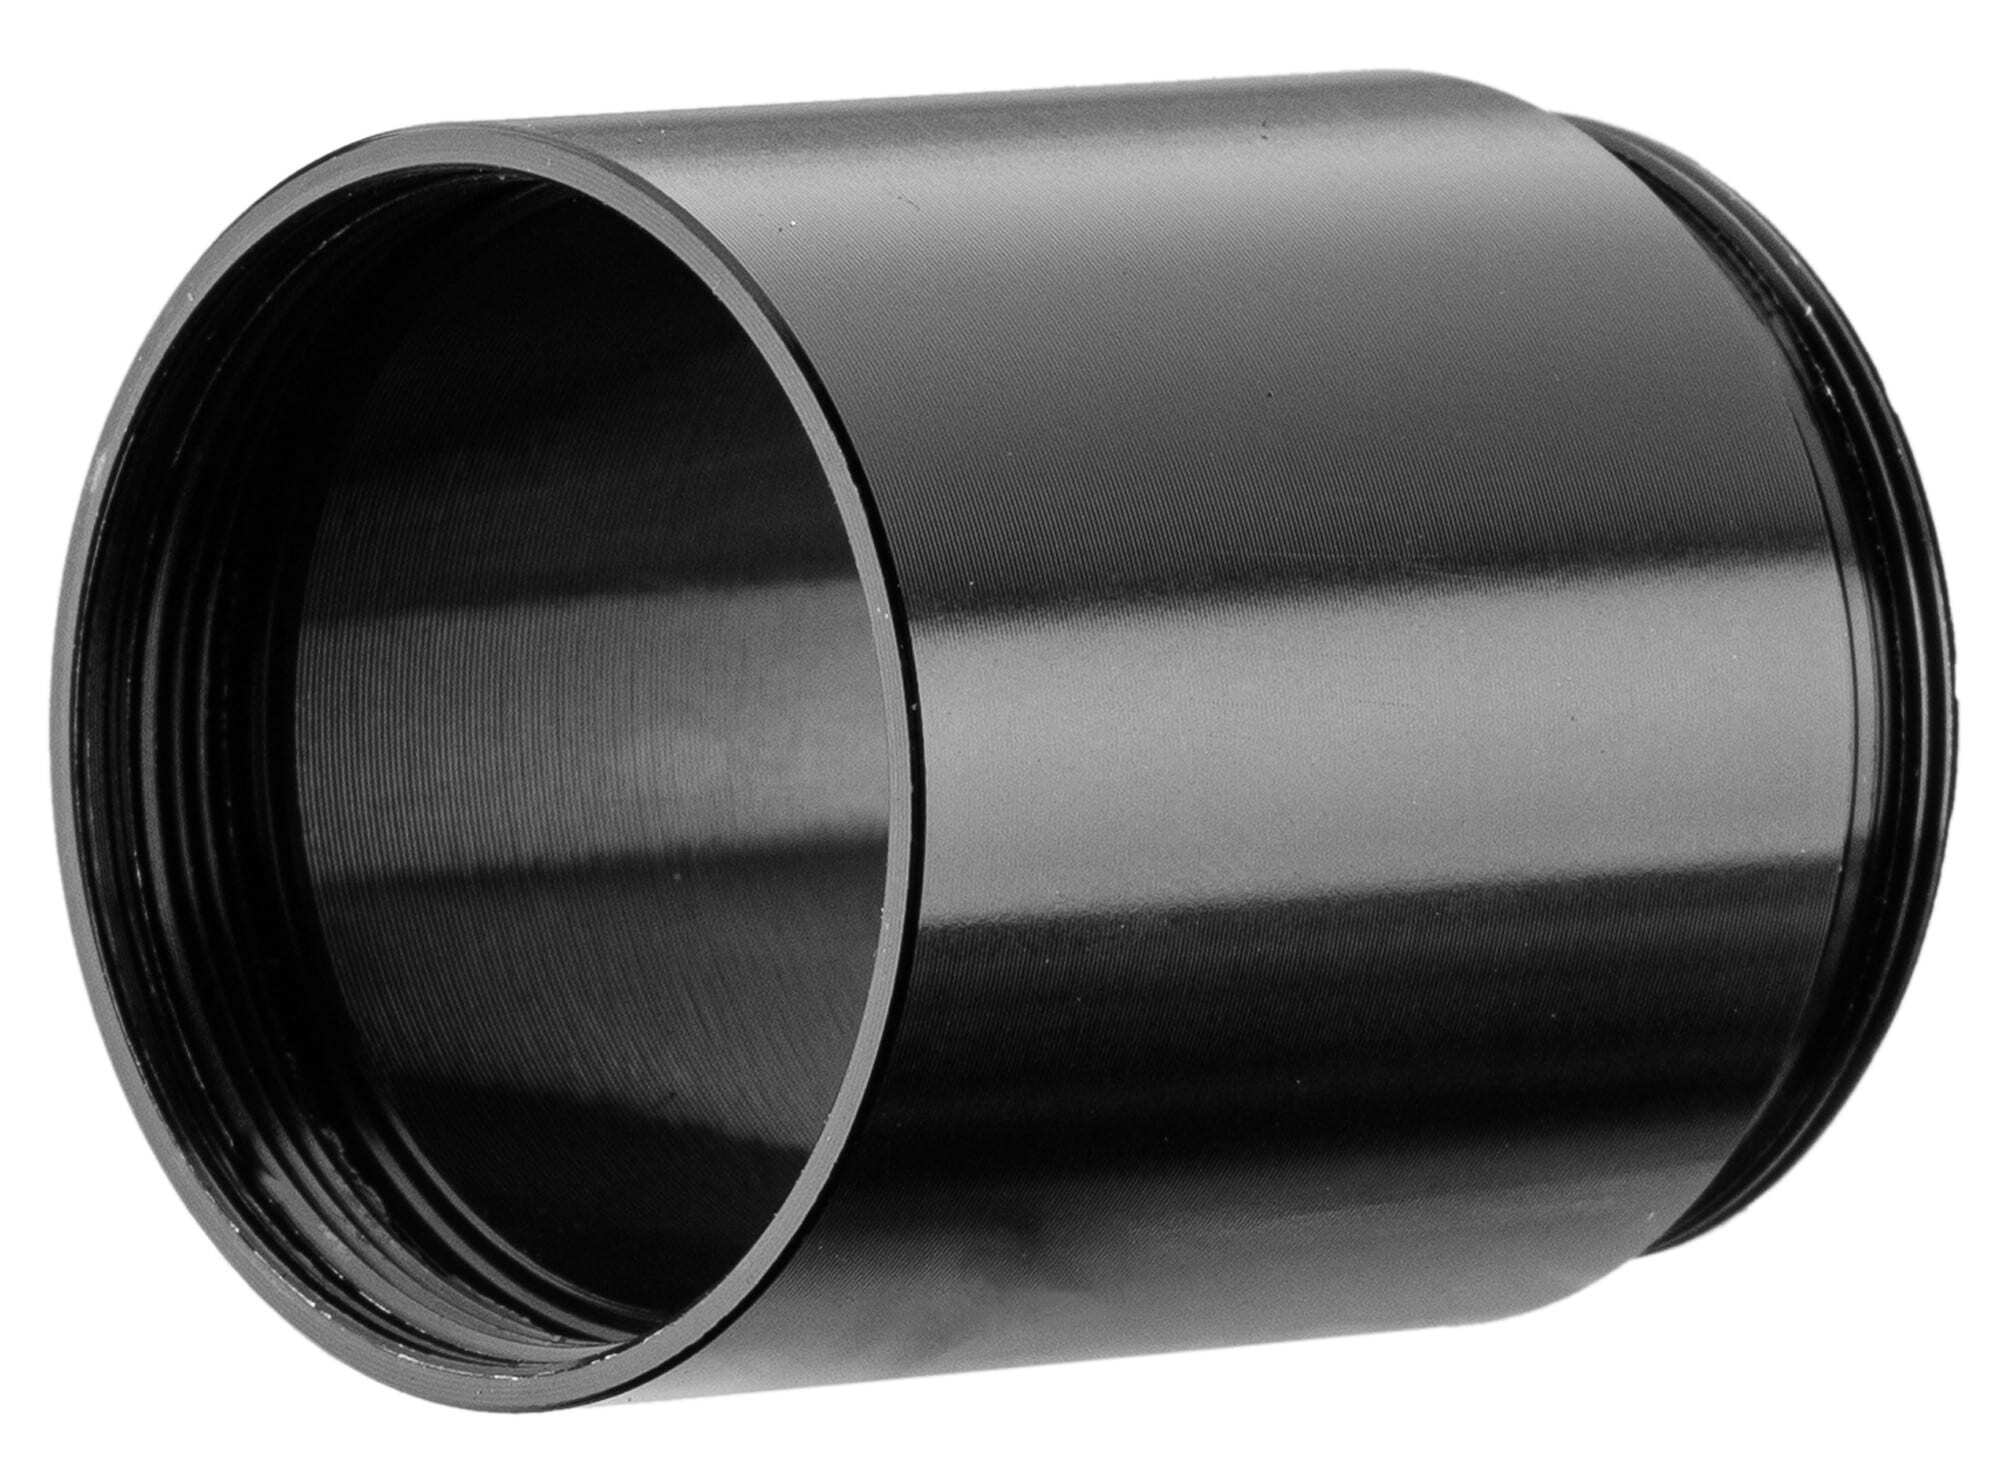 A69321 Extension de tube de crosse pour LT-34 Enforcer PDW - A69321